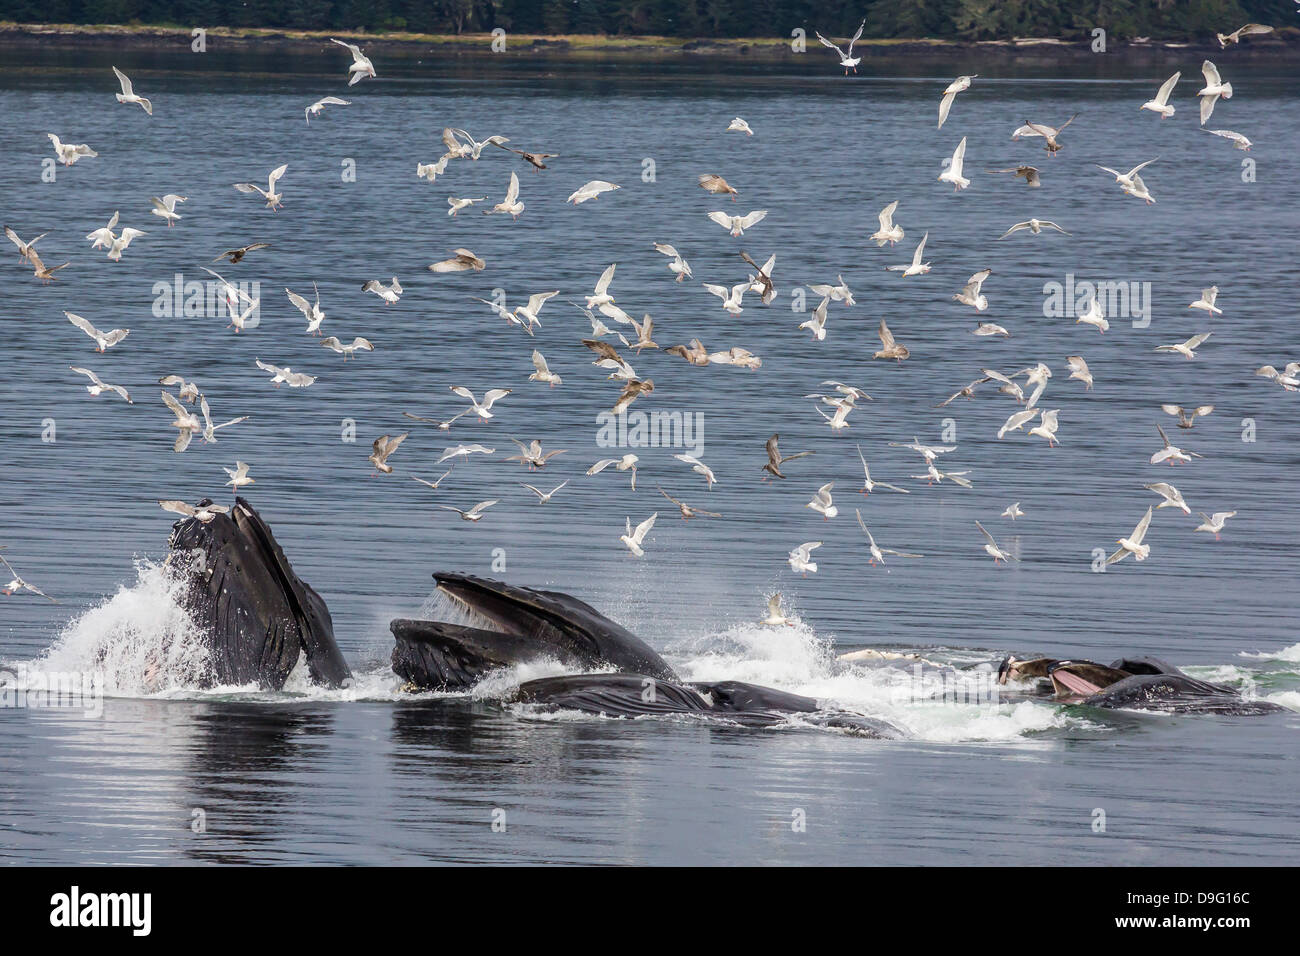 Adult humpback whales (Megaptera novaeangliae) co-operatively bubble-net feeding, Snow Pass, Southeast Alaska, USA - Stock Image